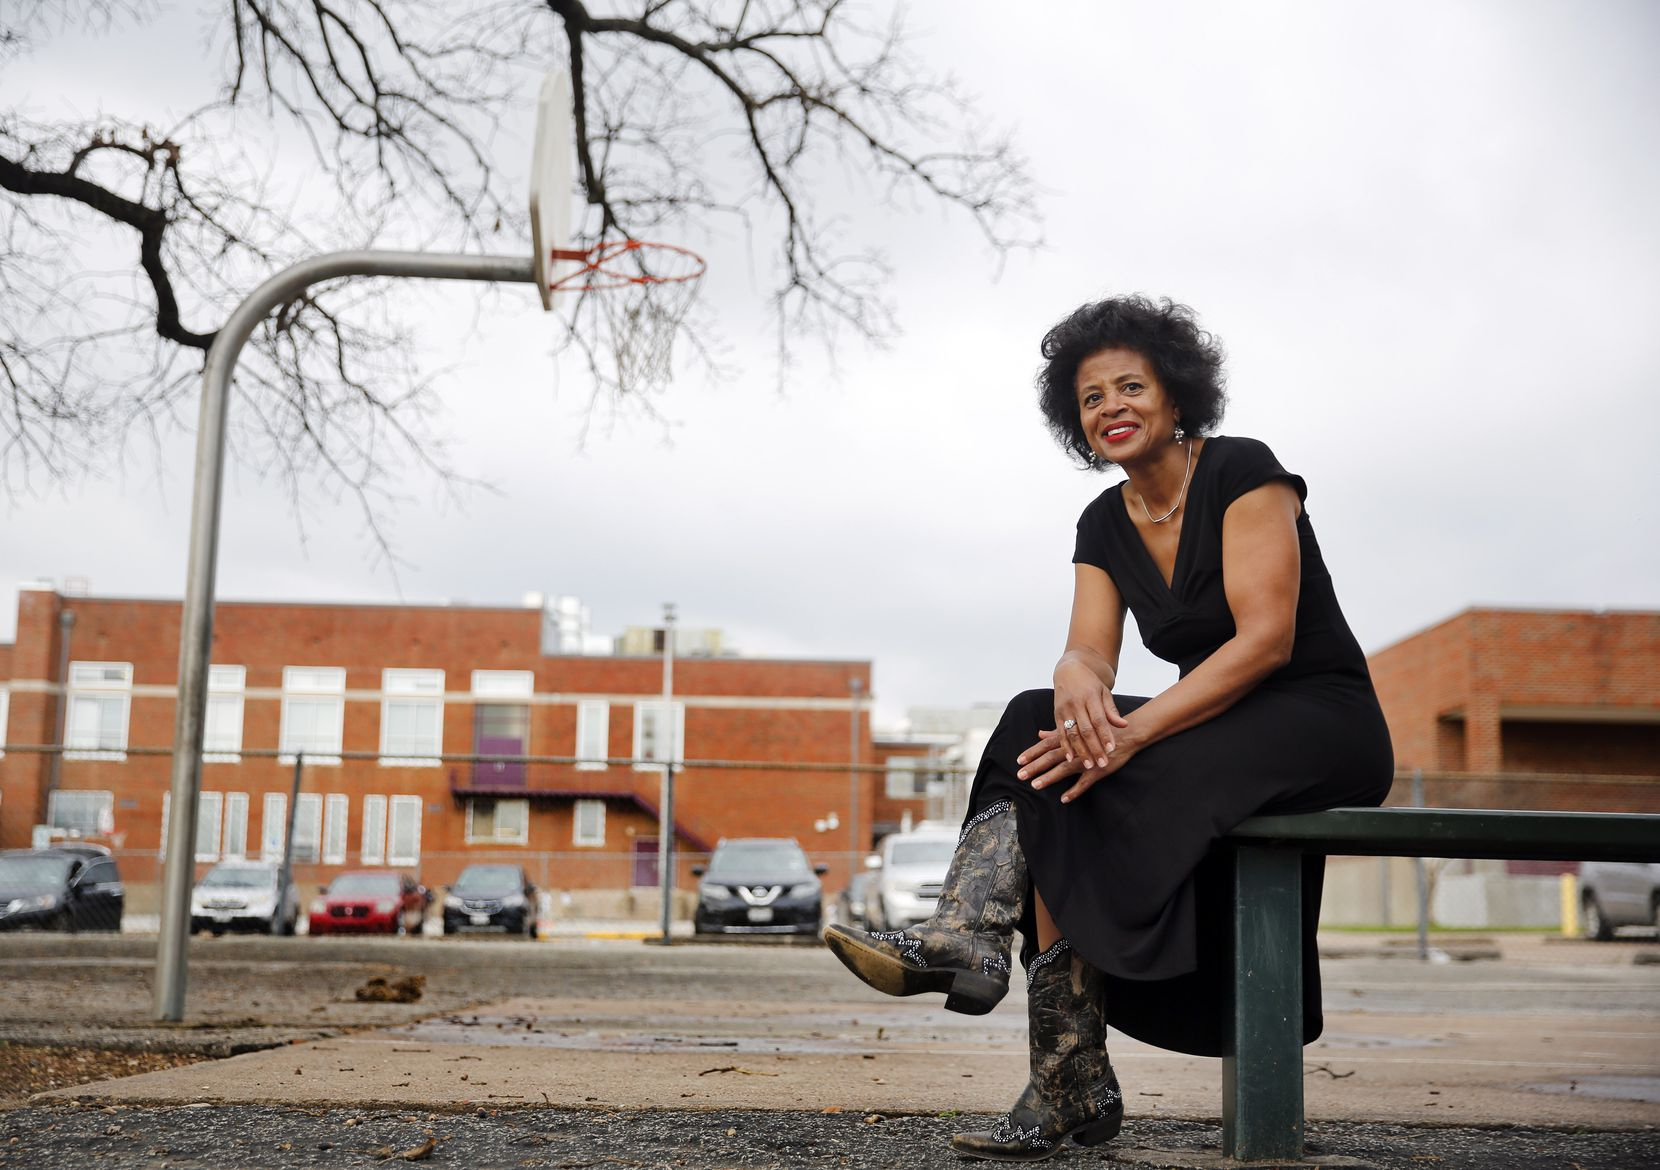 Alendra Lyons got the city to make improvements in T.G. Terry Park, including new, curved basketball hoops behind Paul L. Dunbar Learning Center in South Dallas.